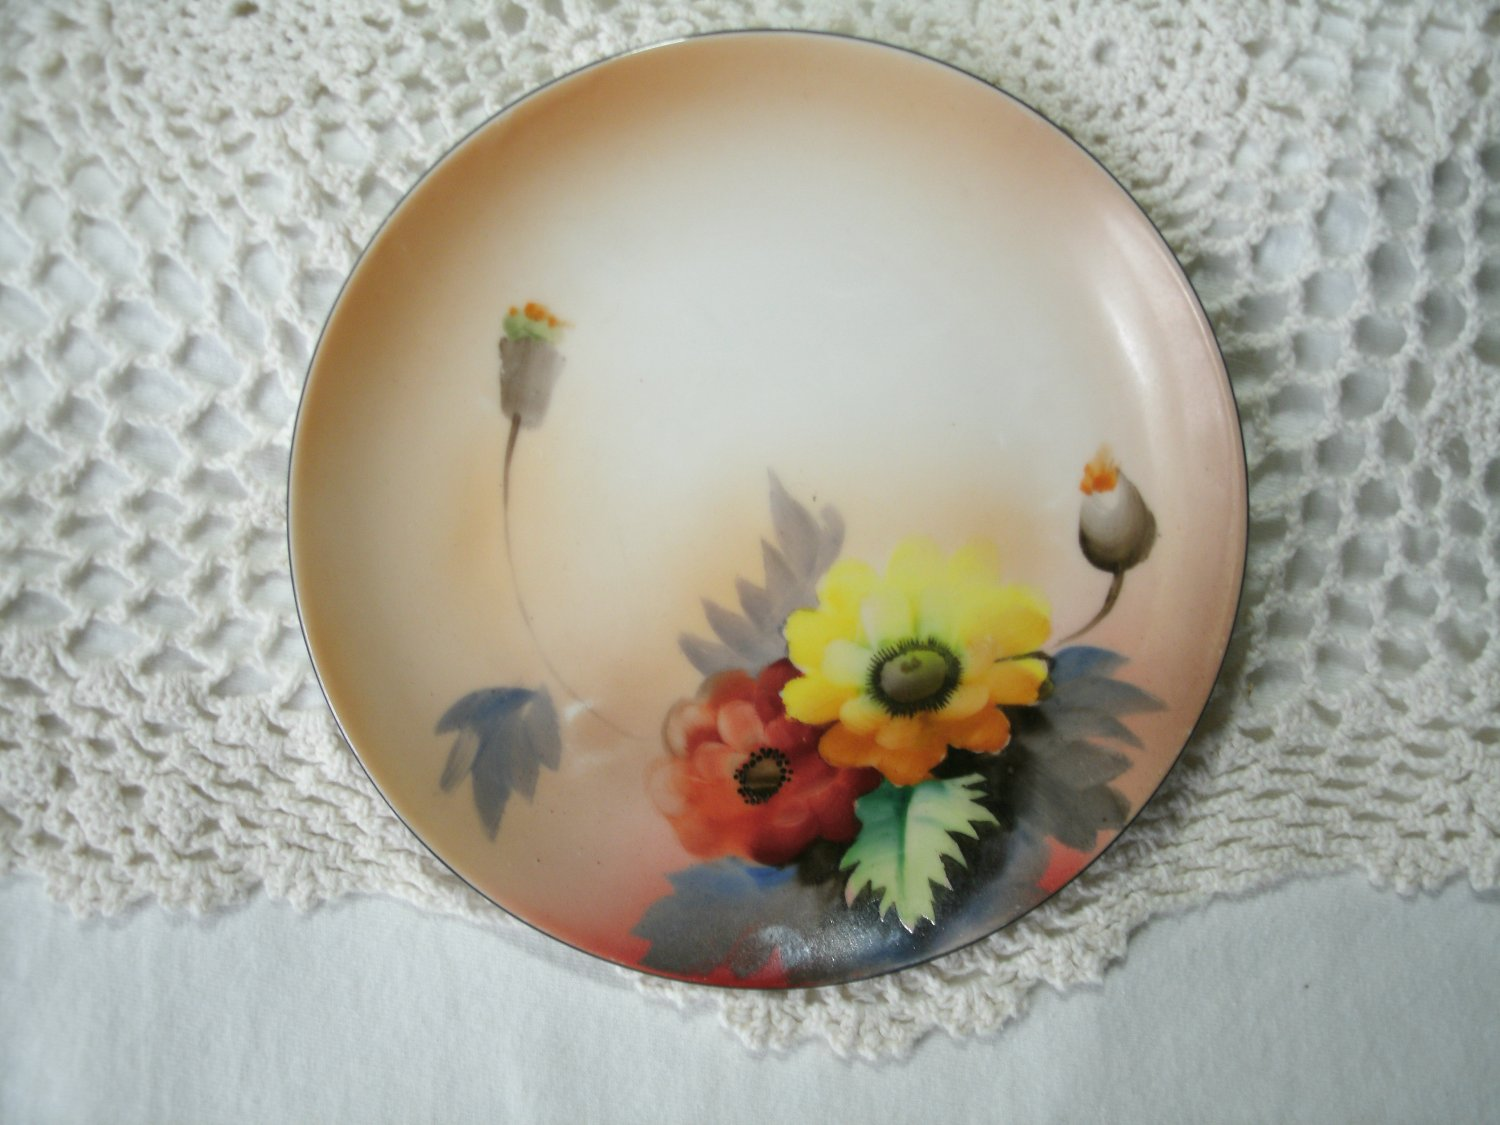 Hand Painted Floral Plate Noritake Morimura 6 1/4 Inches 1920's Vintage